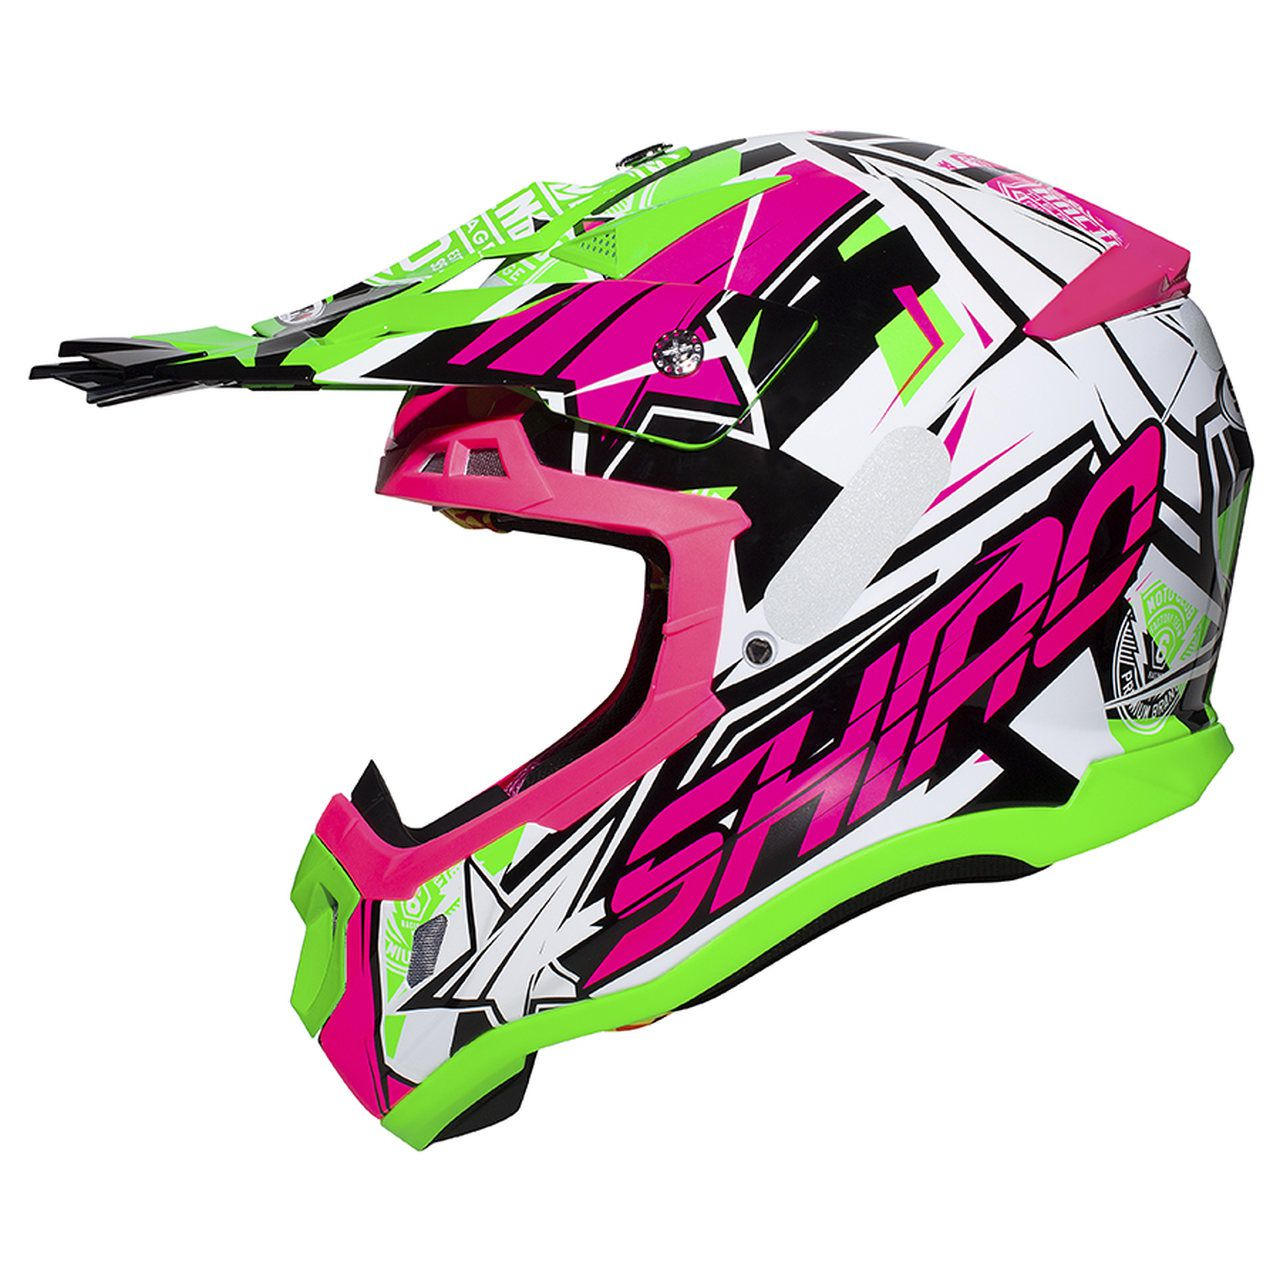 Capacete Shiro Motocross Off Road MX-917 Thunder III Branco Rosa e Verde